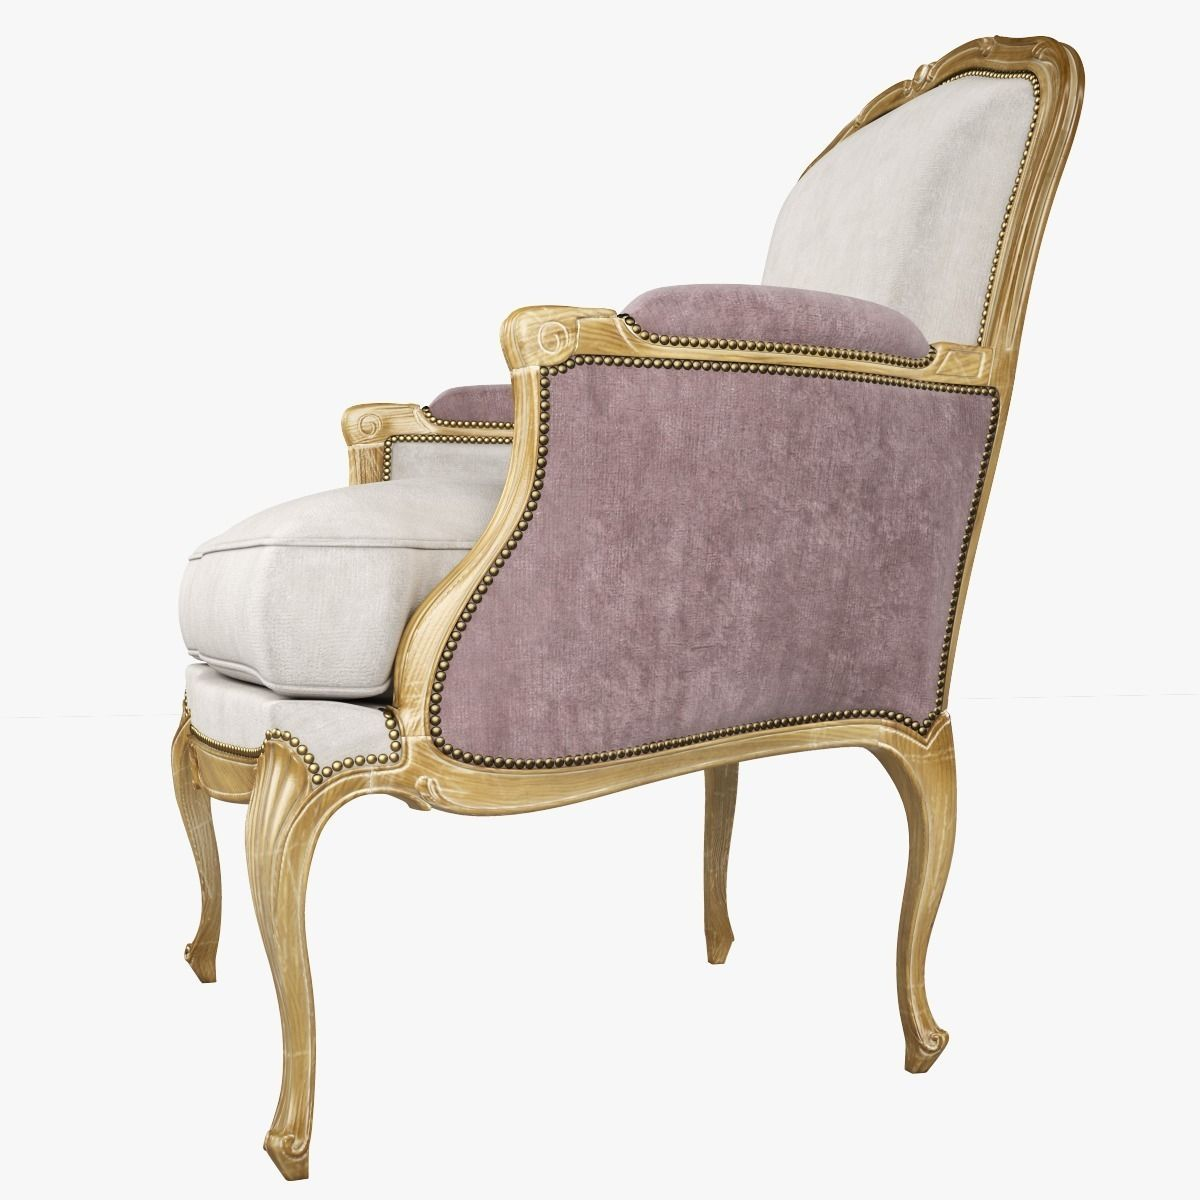 louis xv chair pottery barn anywhere insert chevigny bergere 3d model max cgtrader